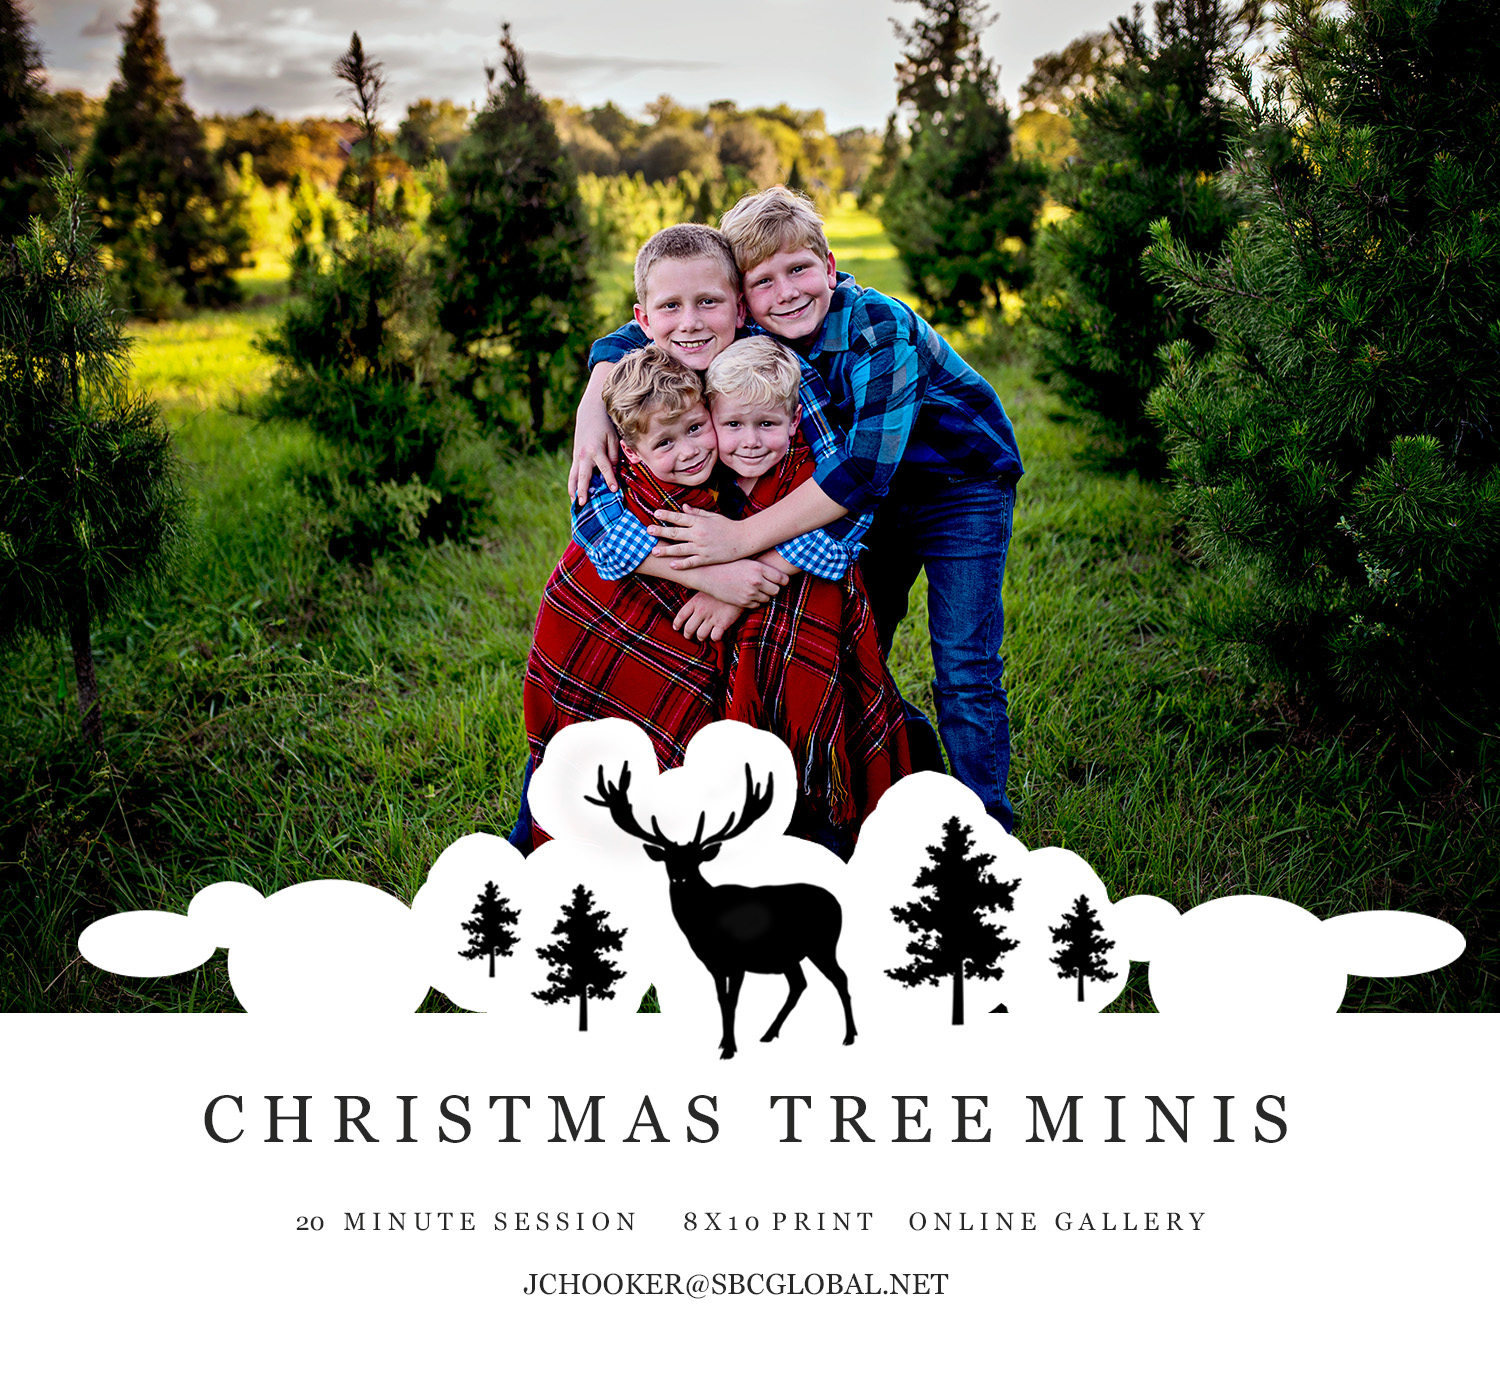 ChristmastreeMarketingBoard-5x5.jpg